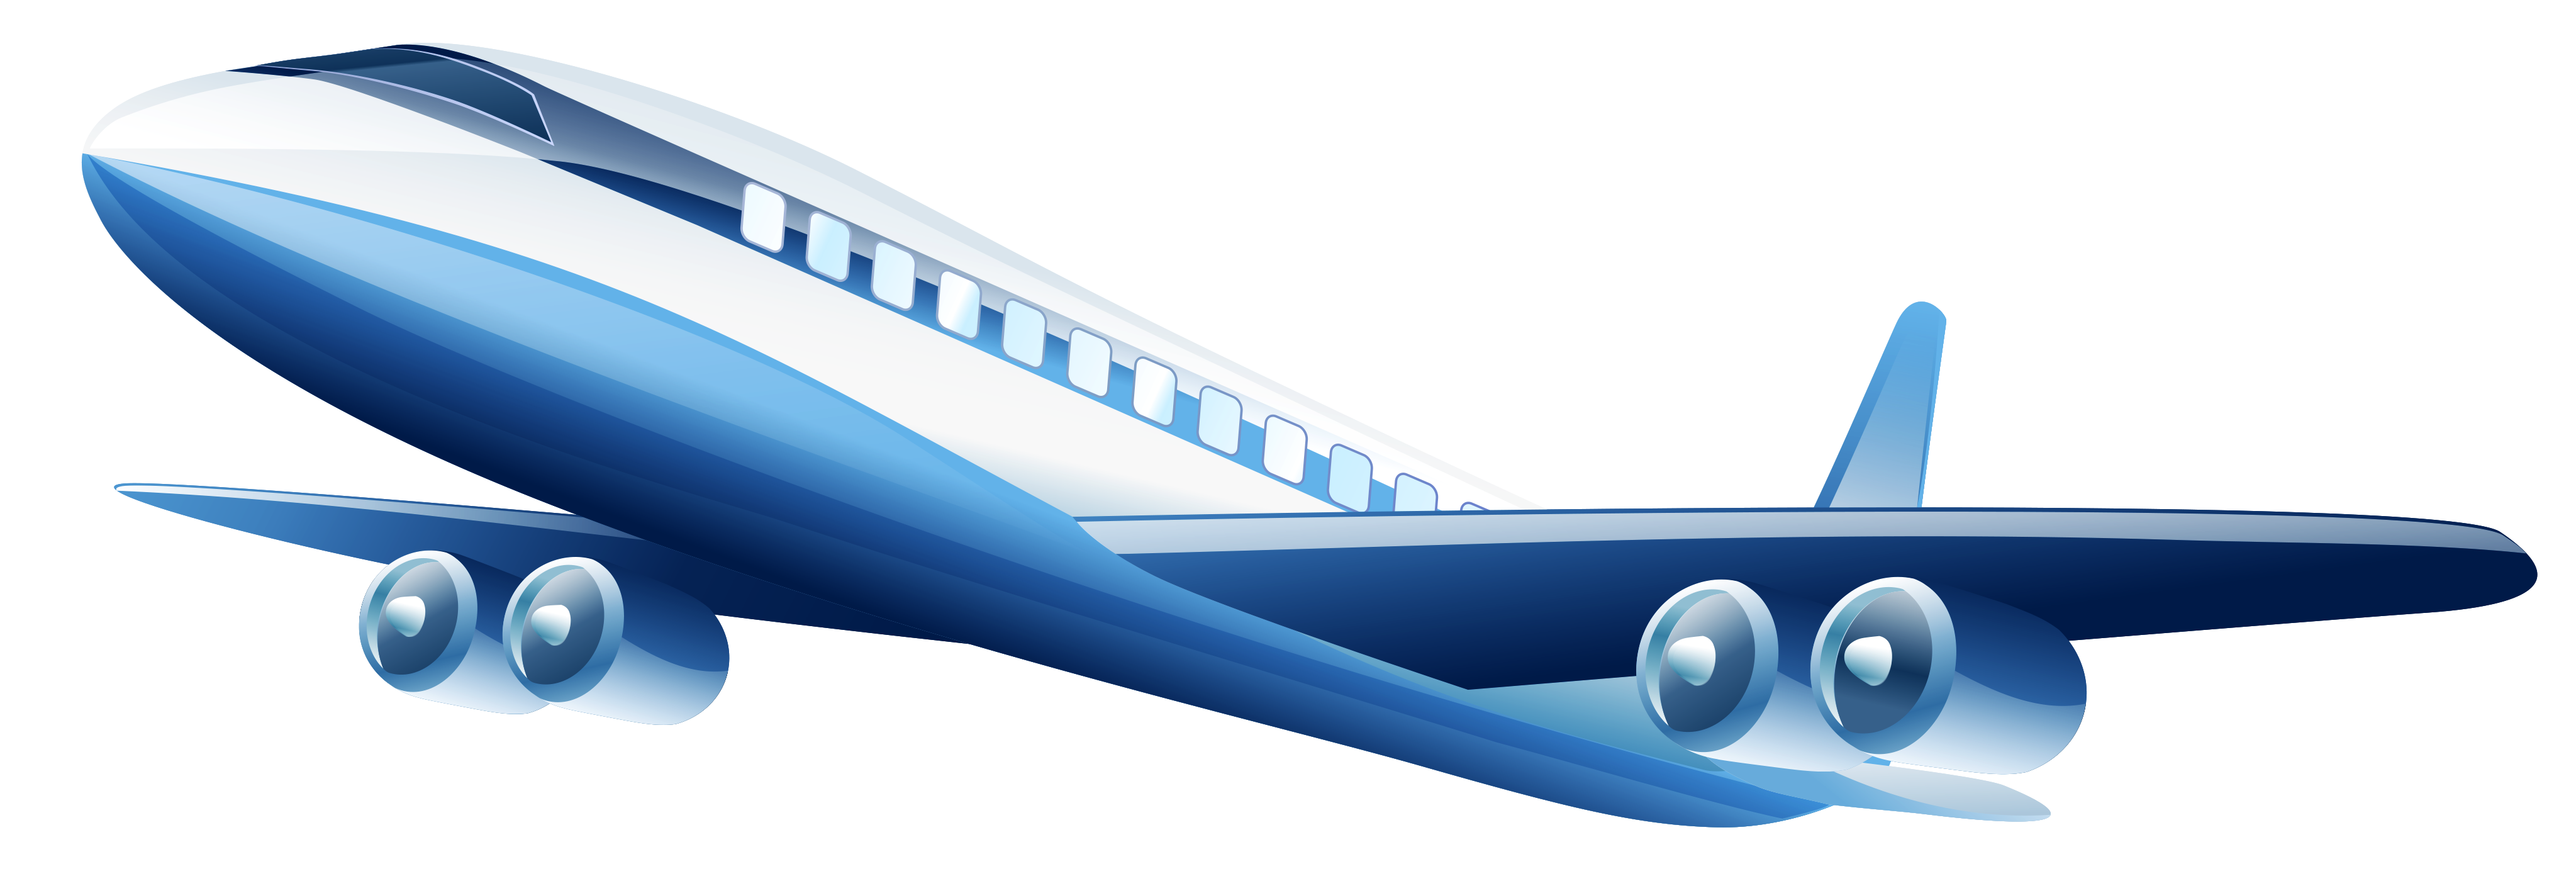 Airplane Png Image - Plane, Transparent background PNG HD thumbnail